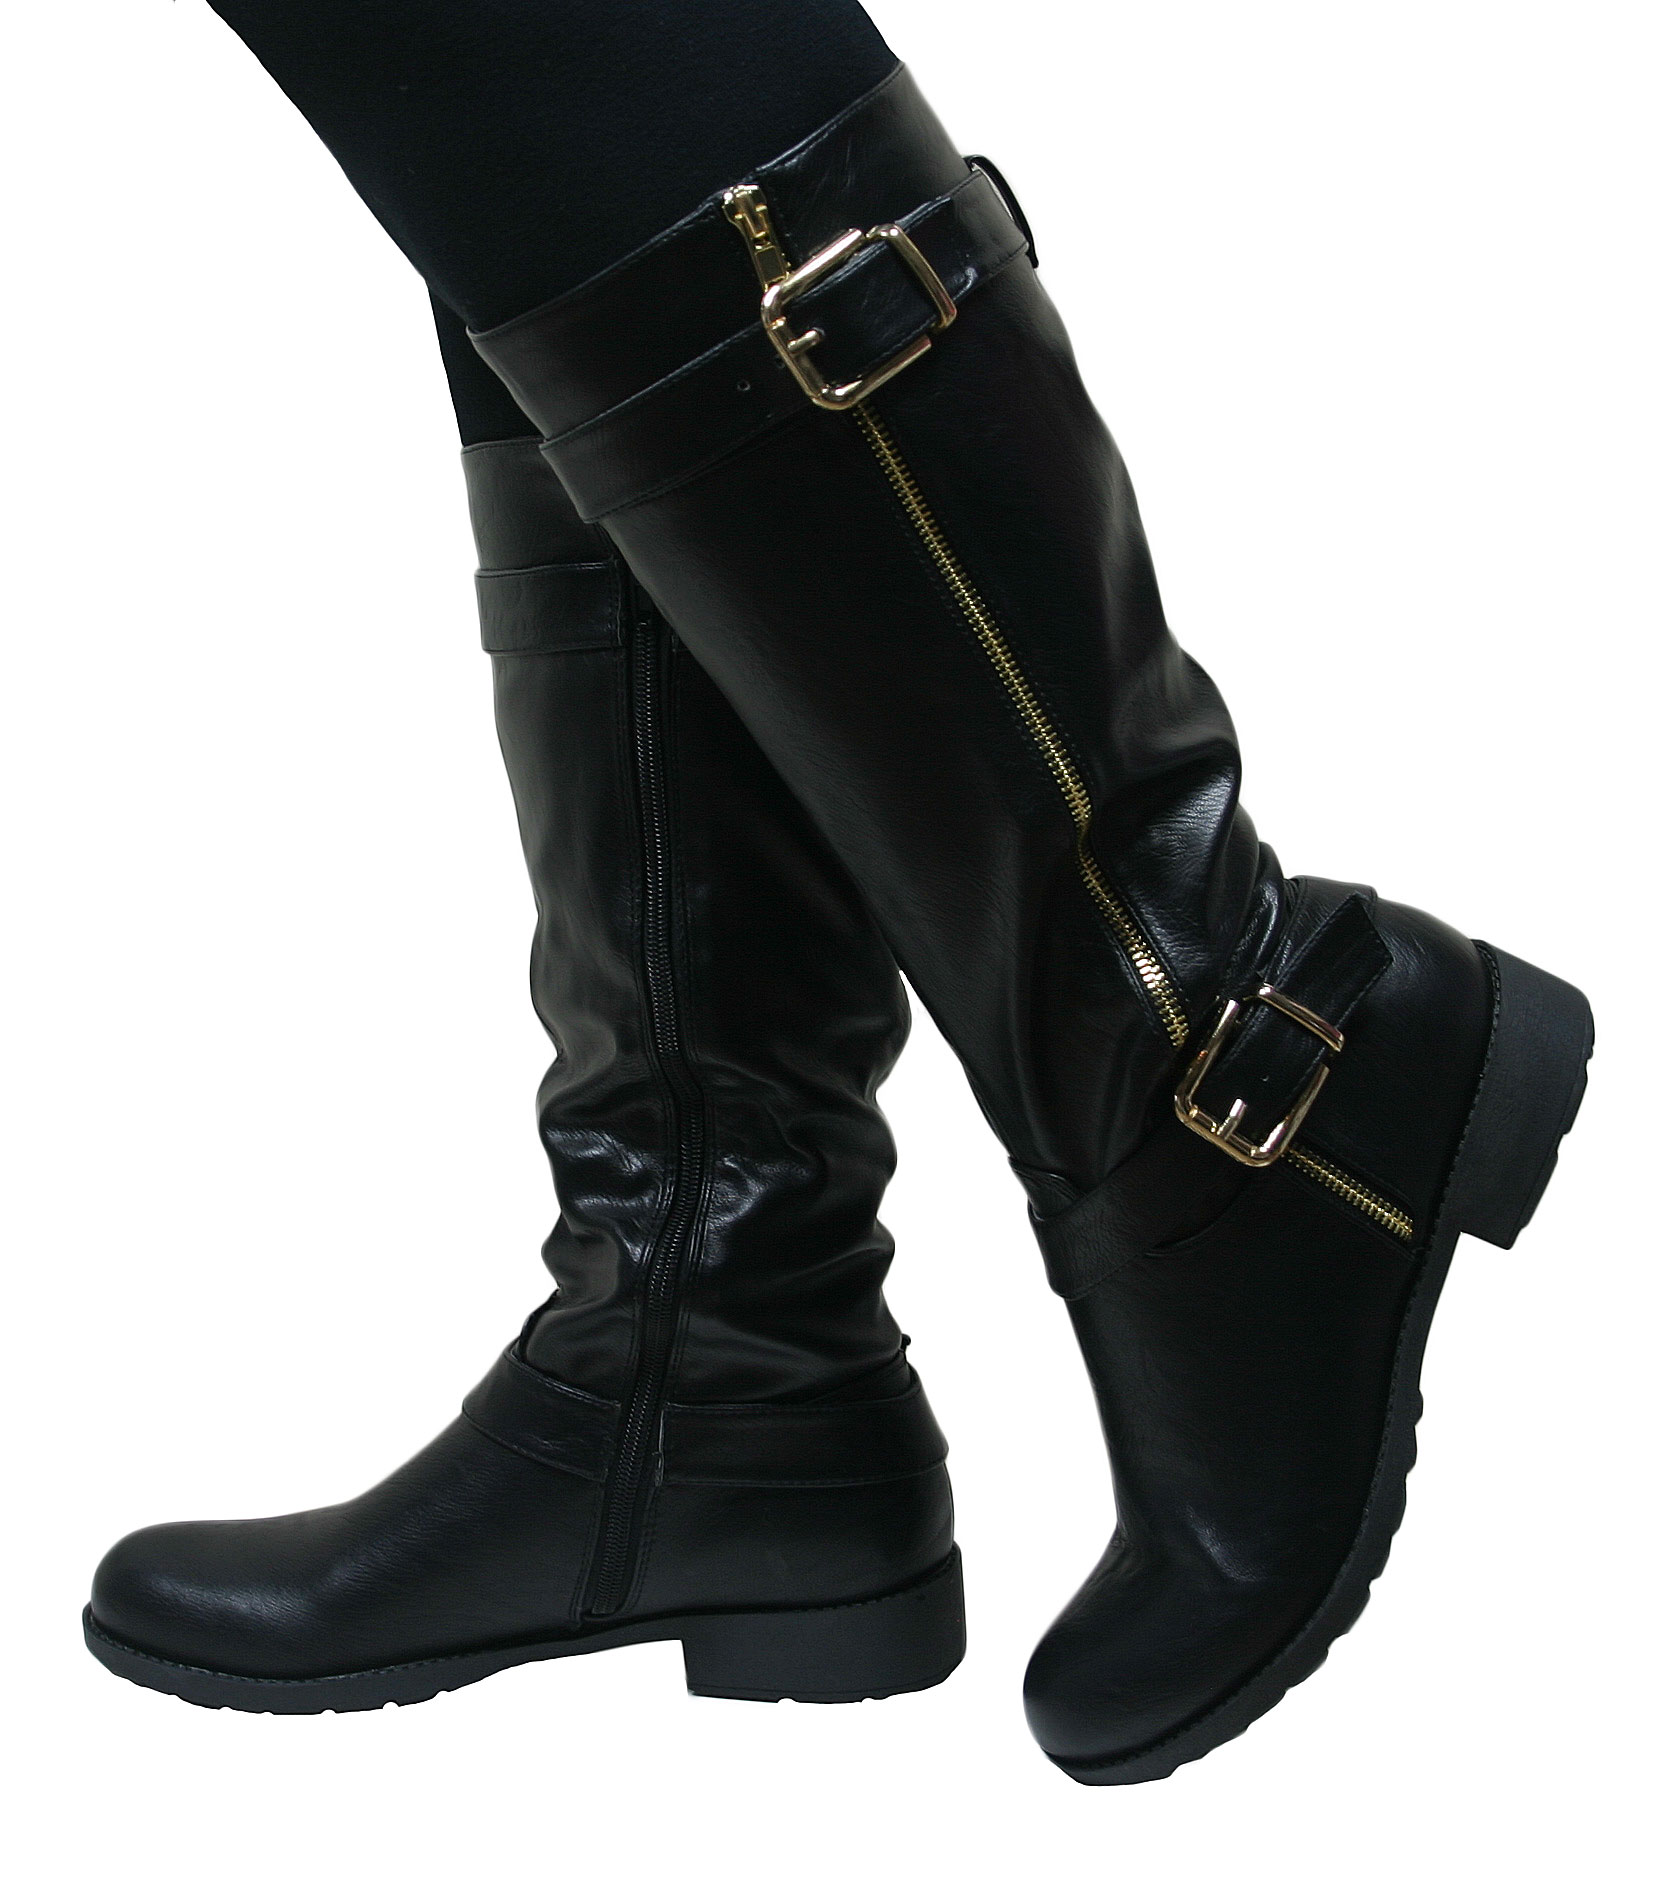 black leather knee high boots for women | Gommap Blog